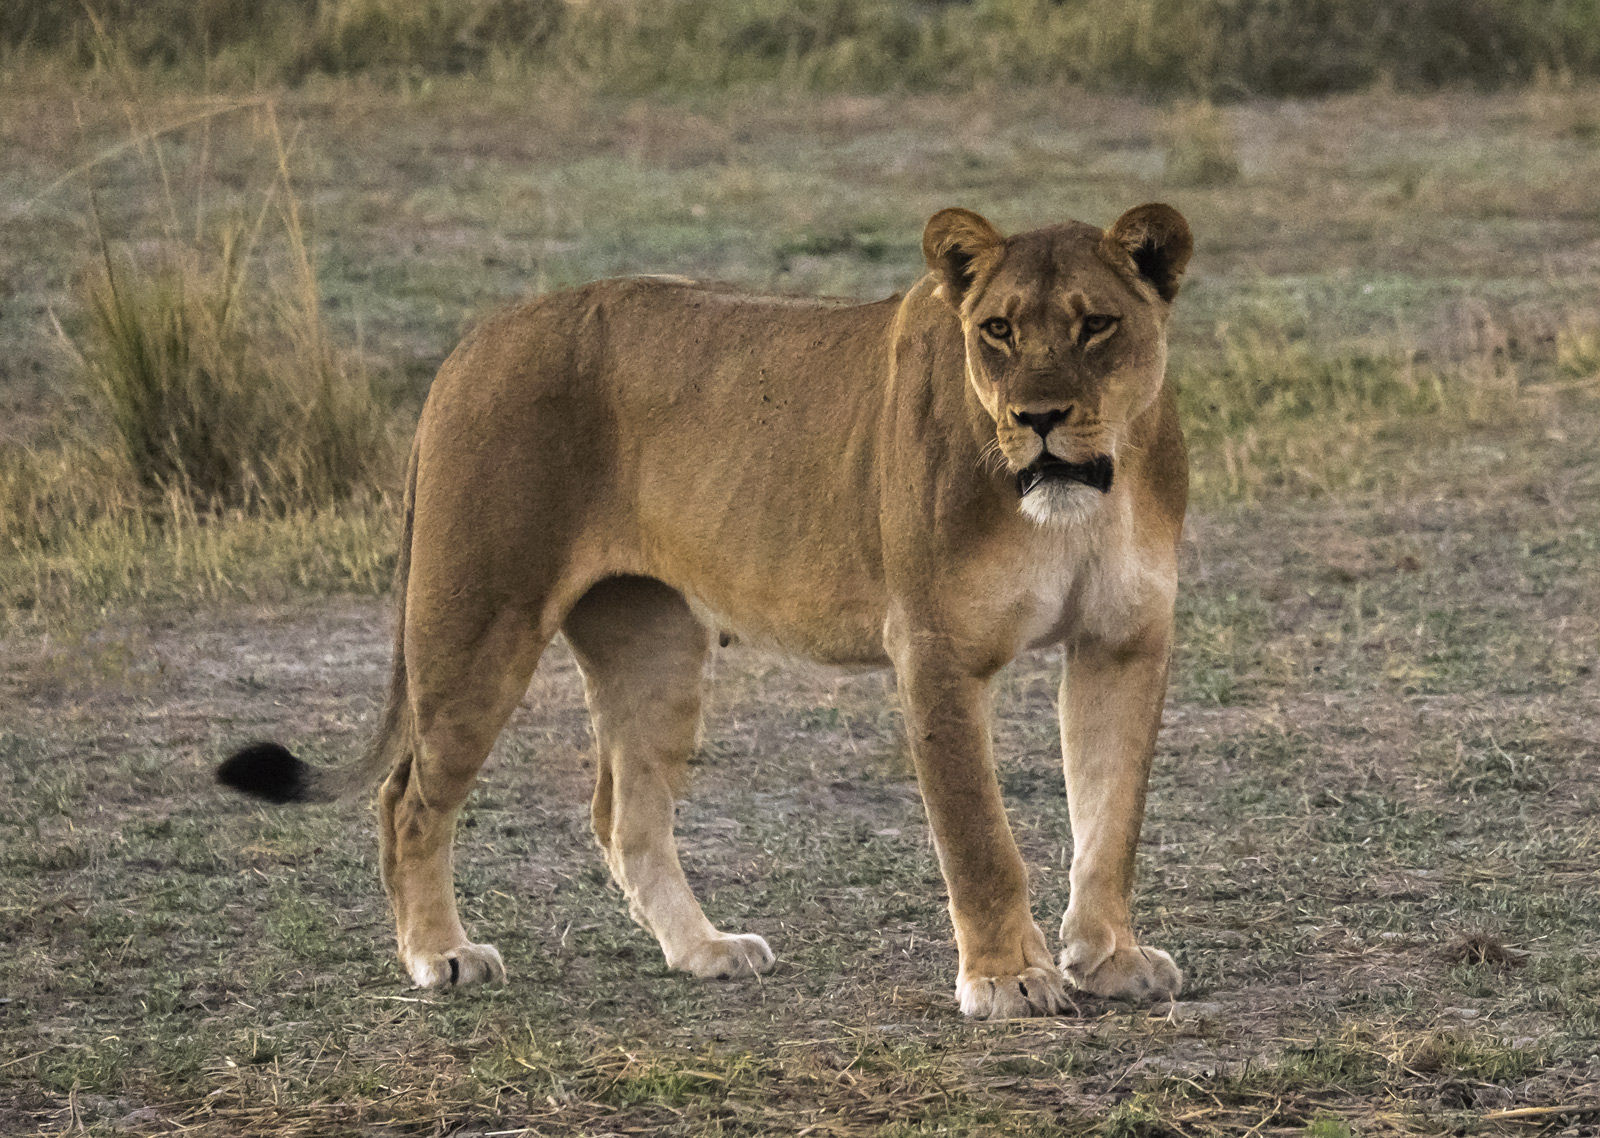 Lioness, Chobe, Botswana, Africa, lion, view, grass, thrill, lioness, evening, hunt, summoning, cubs, growl, menacing, photo